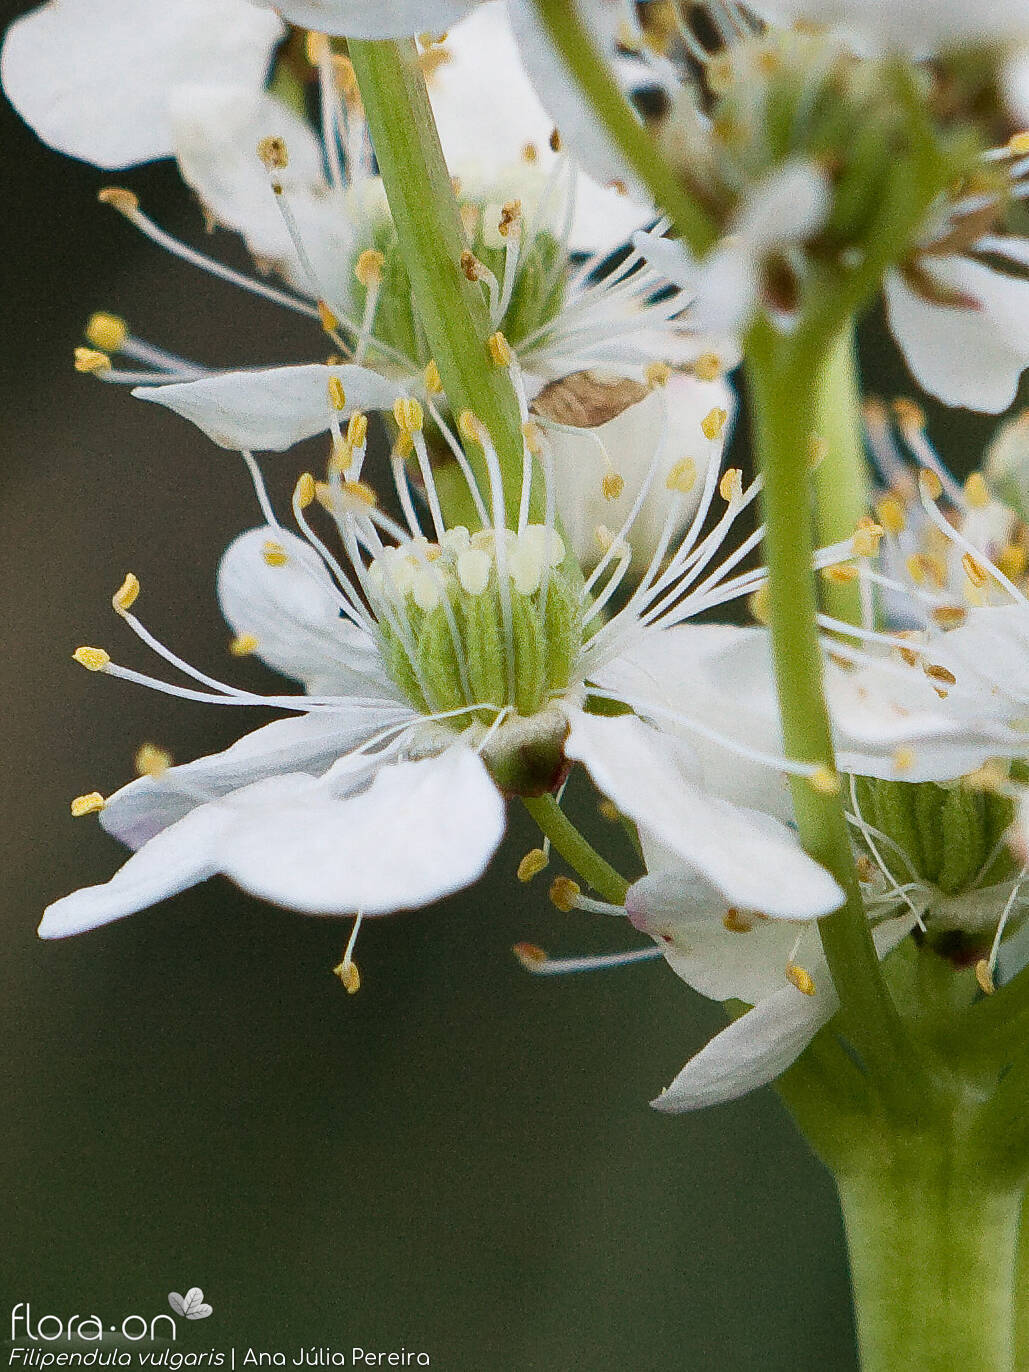 Filipendula vulgaris - Flor (close-up) | Ana Júlia Pereira; CC BY-NC 4.0